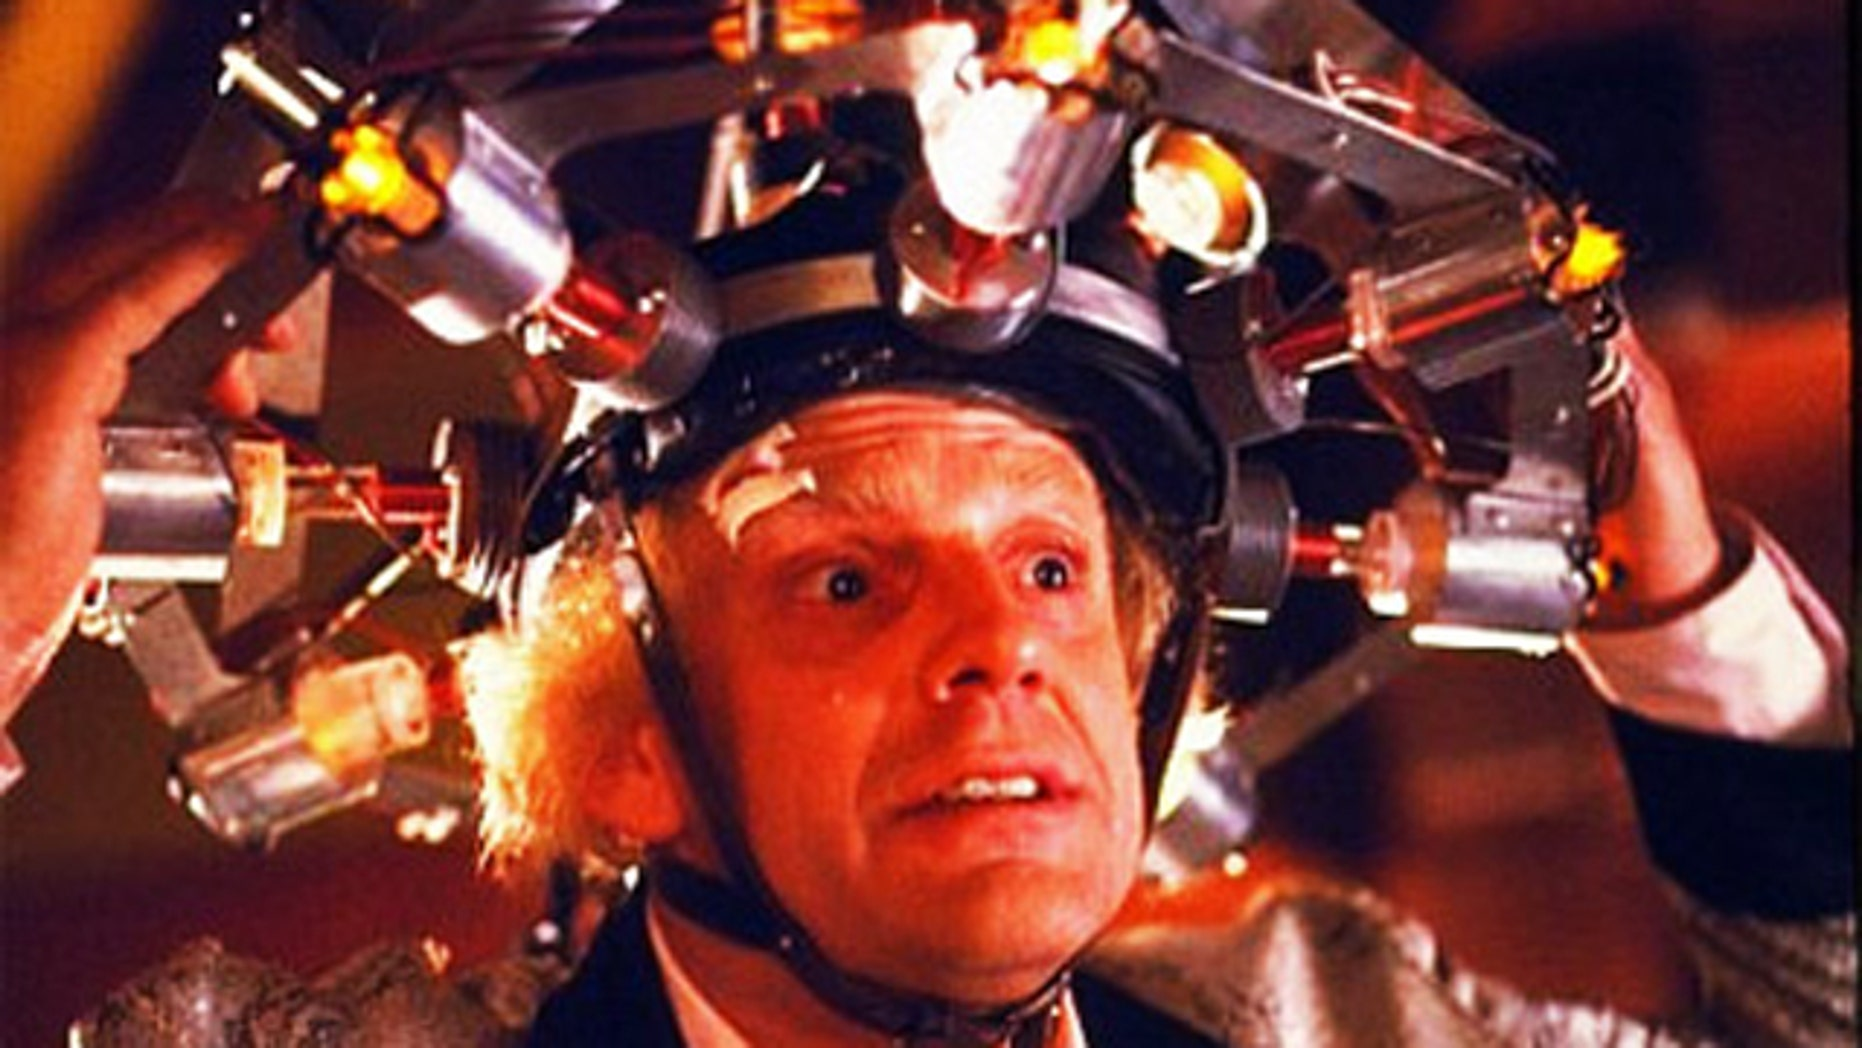 Doc Brown, the crazy inventor from Back to the Future, may not have perfected his mind-reading contraption, but real scientists are still trying.